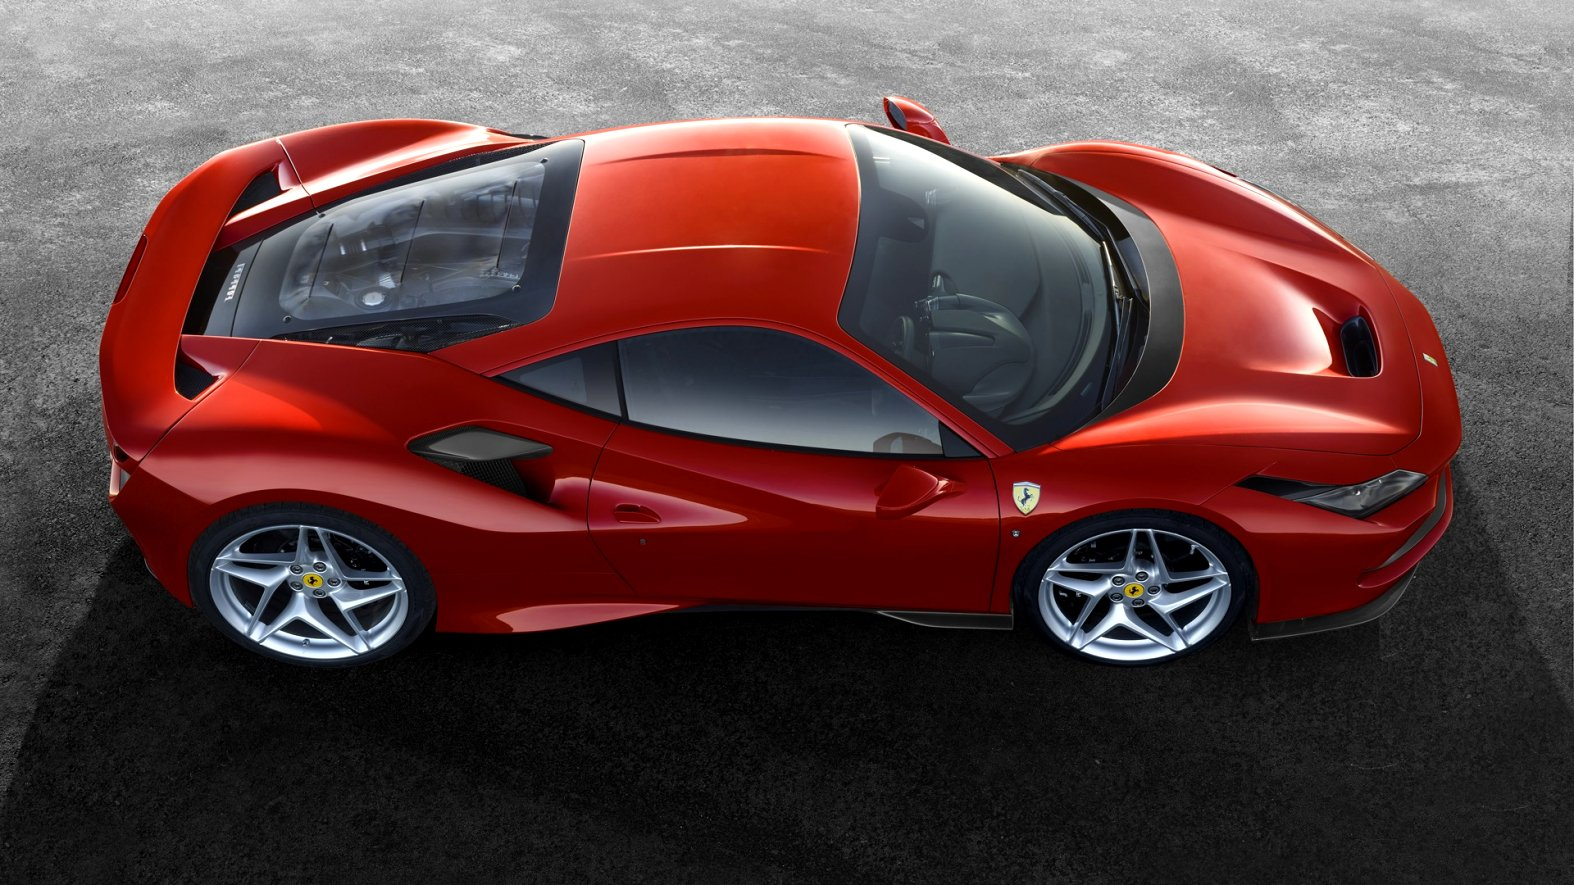 2020 ferrari new Redesign and Concept